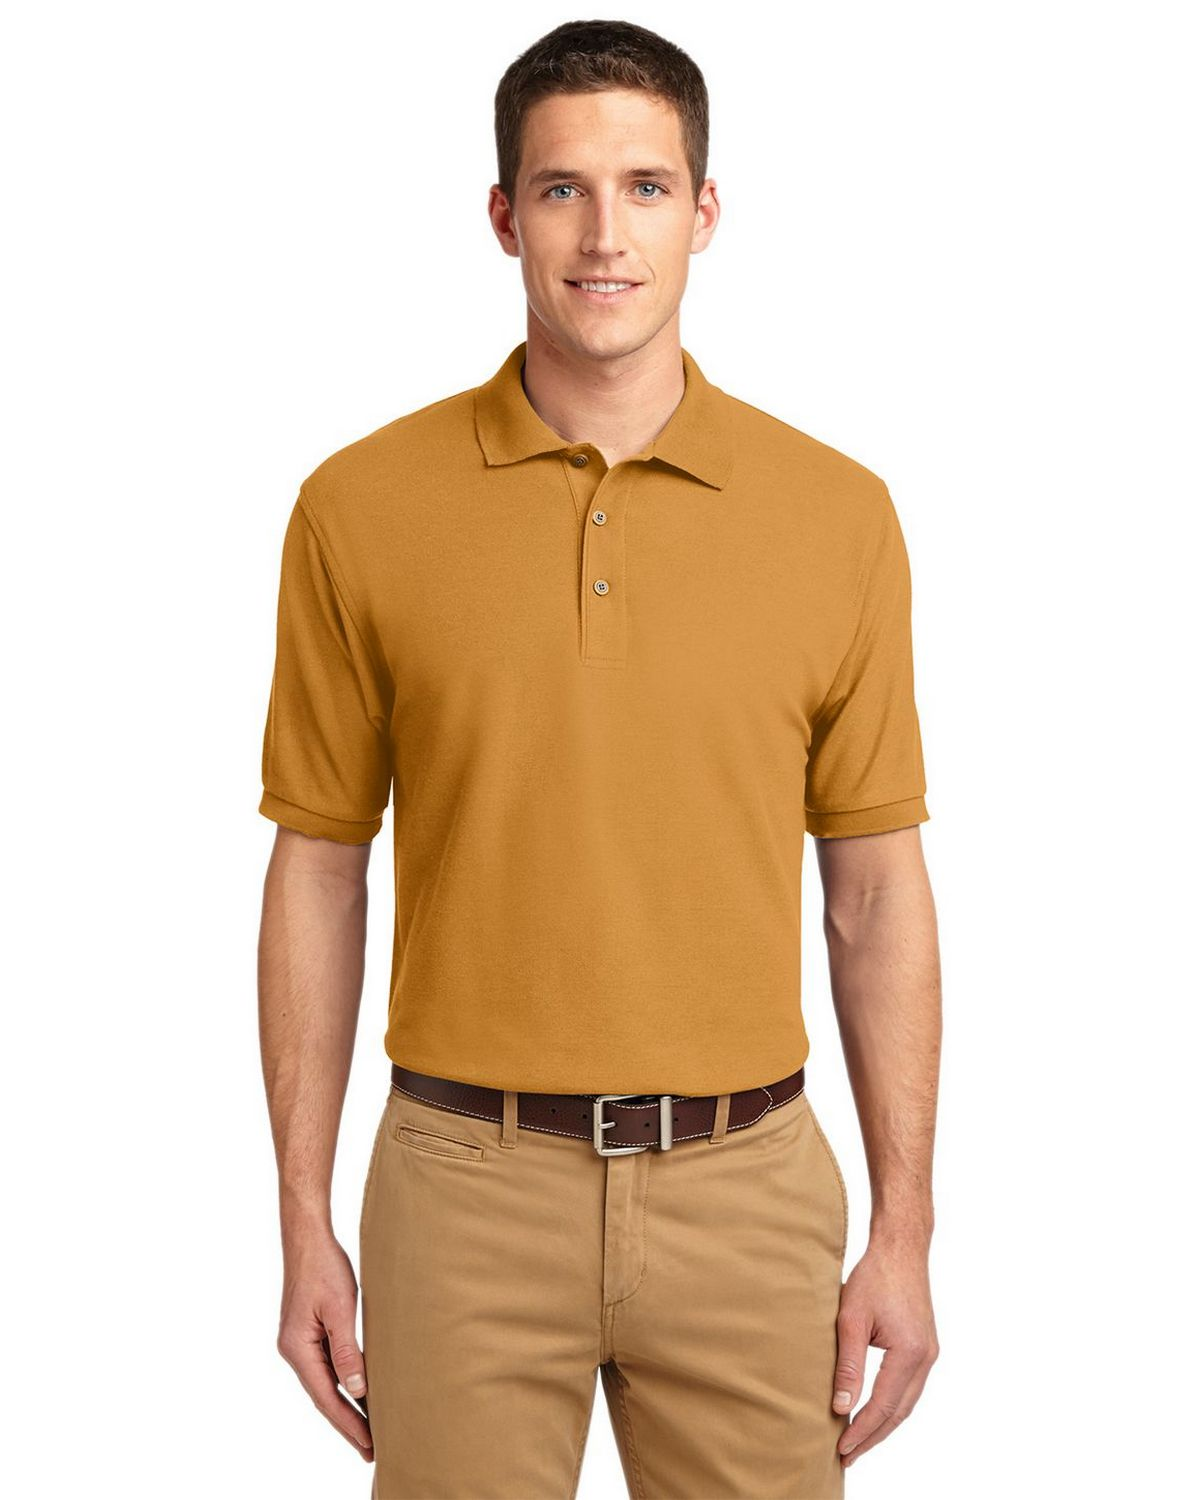 Port Authority K500 Men's Silk Touch Polo - Gold - XS #silk